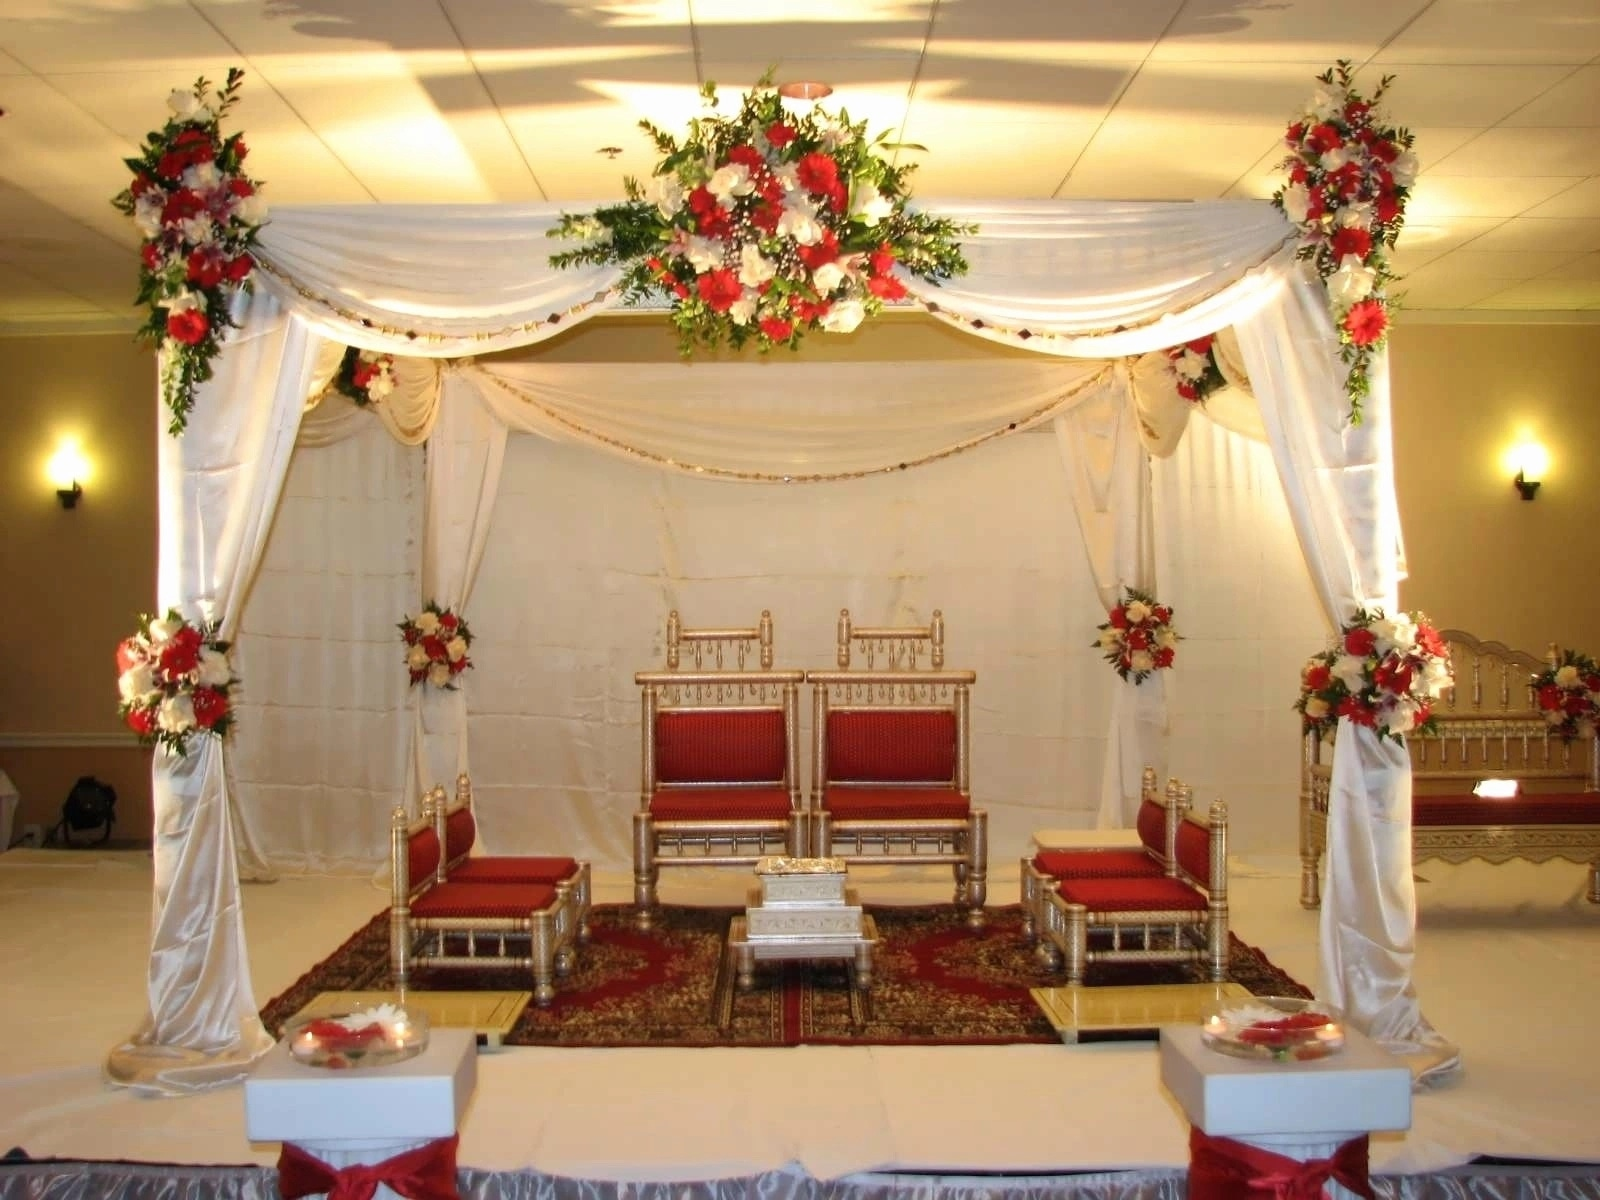 Latest Yoruba traditional wedding decoration ideas ▷ Legit.ng